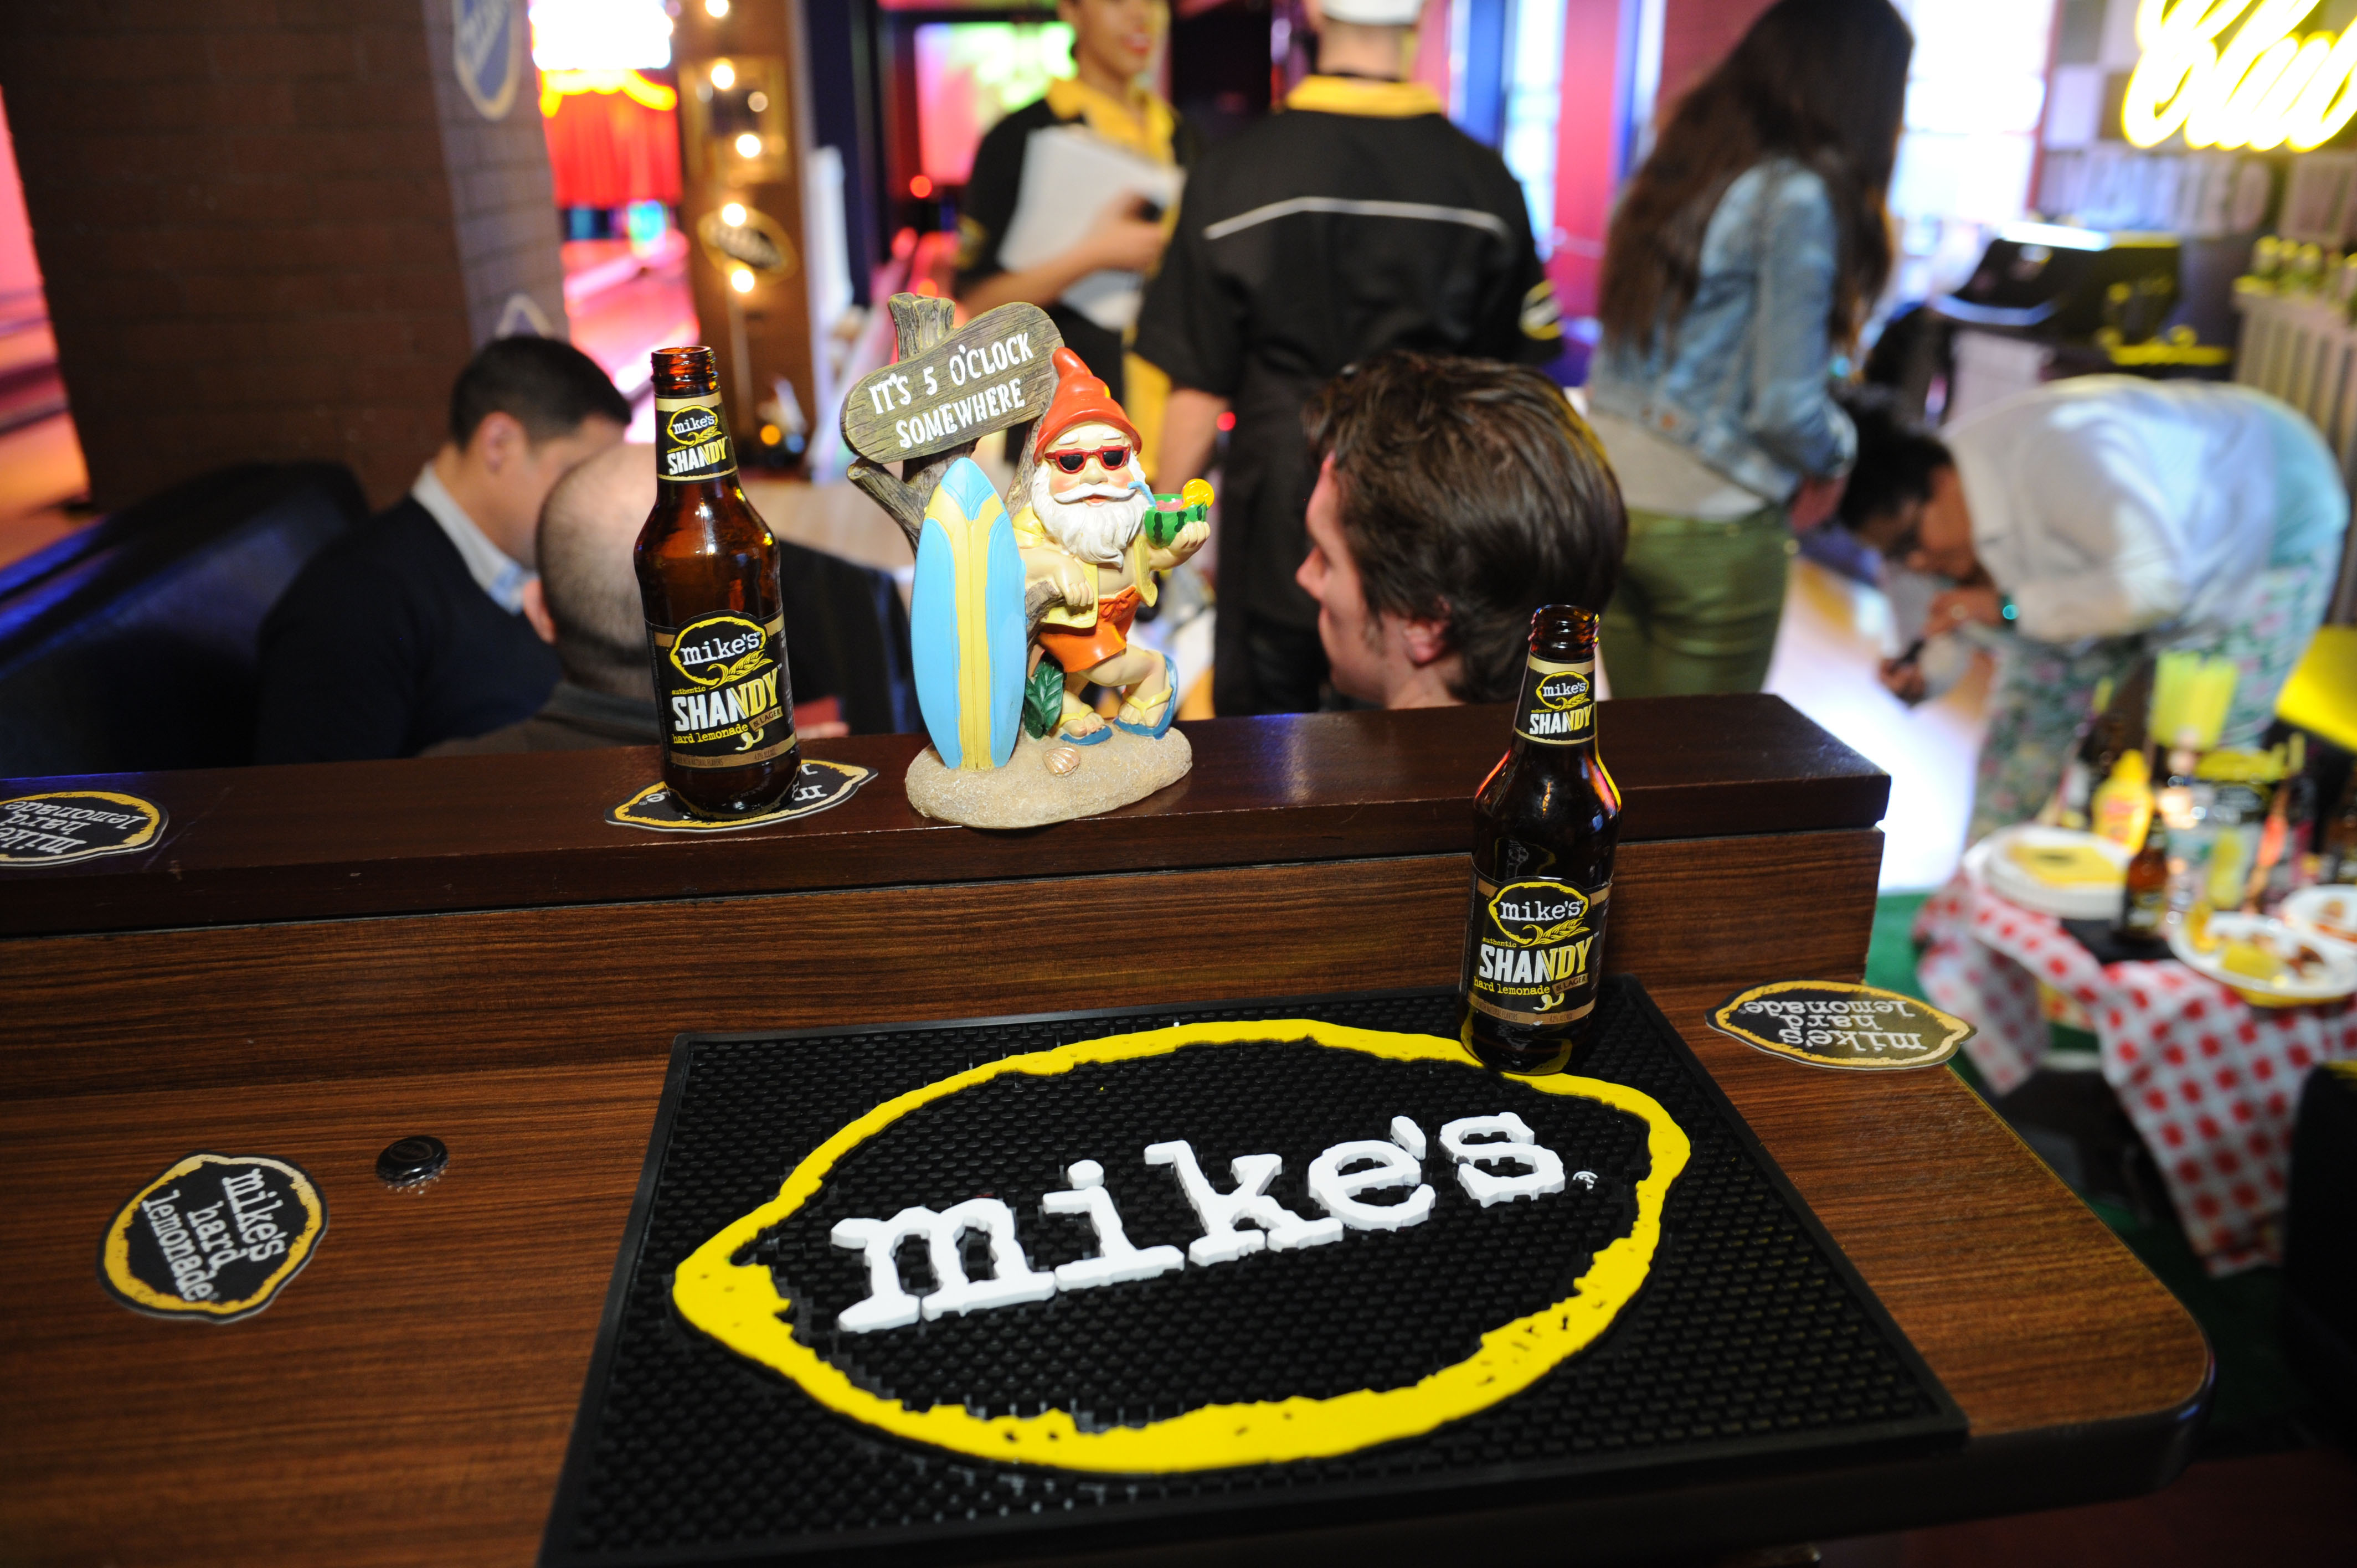 MMS only, NOT for GINS: The Mike's Hard Lemonade Bowl